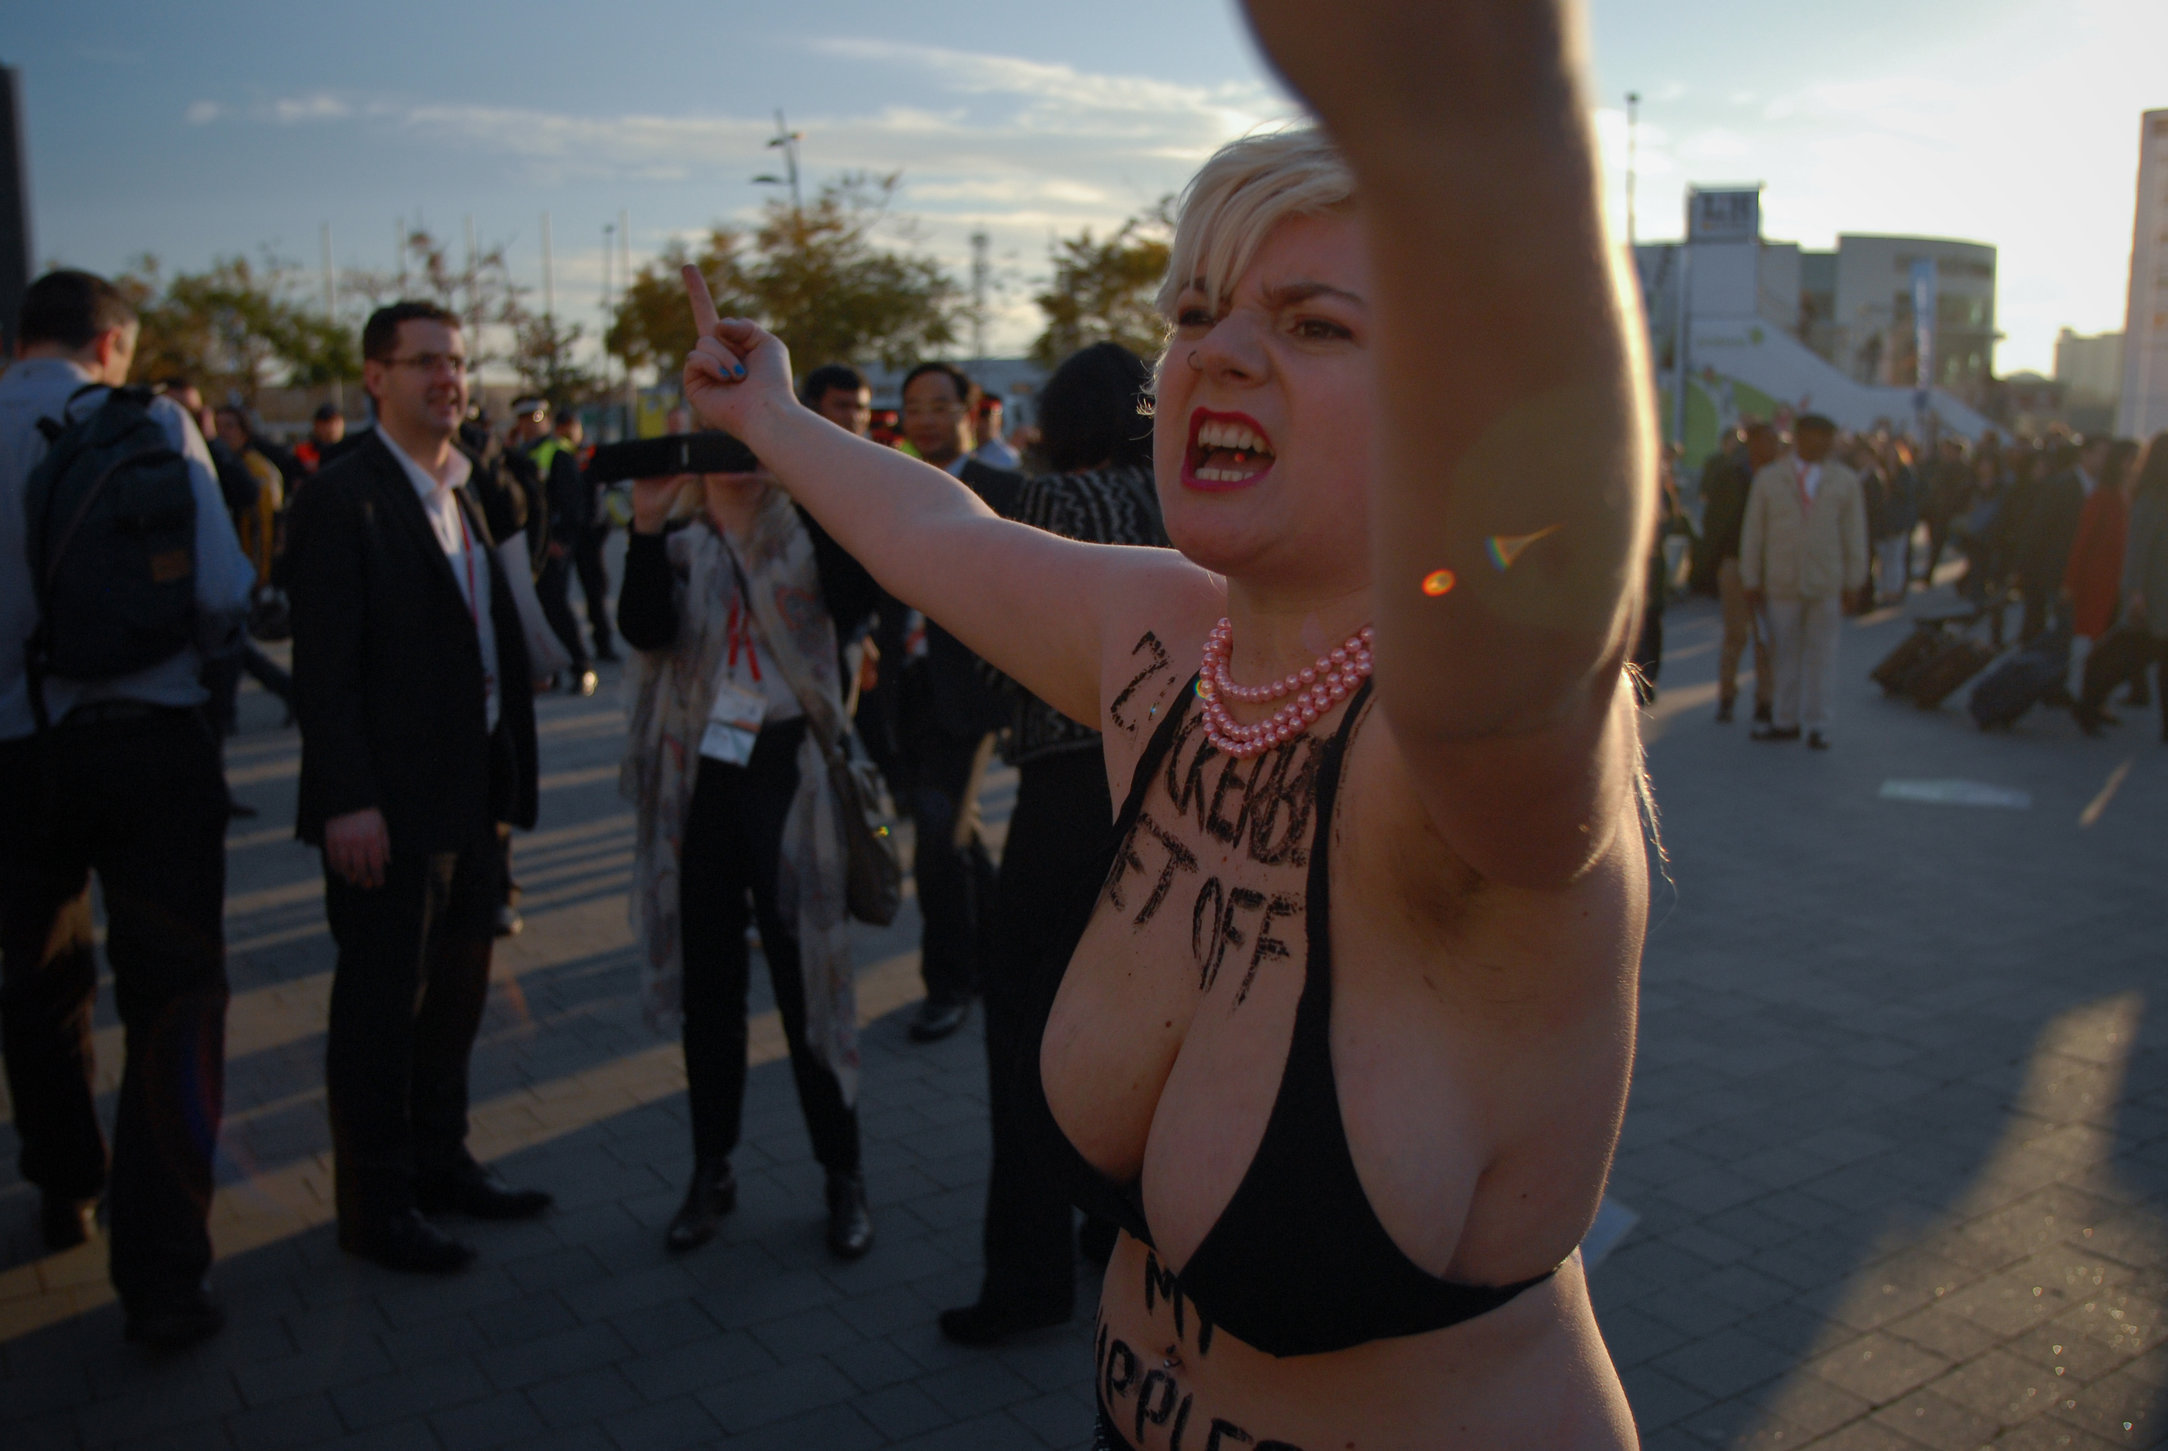 FEMEN protest outside Mobile World Congress - Barcelona